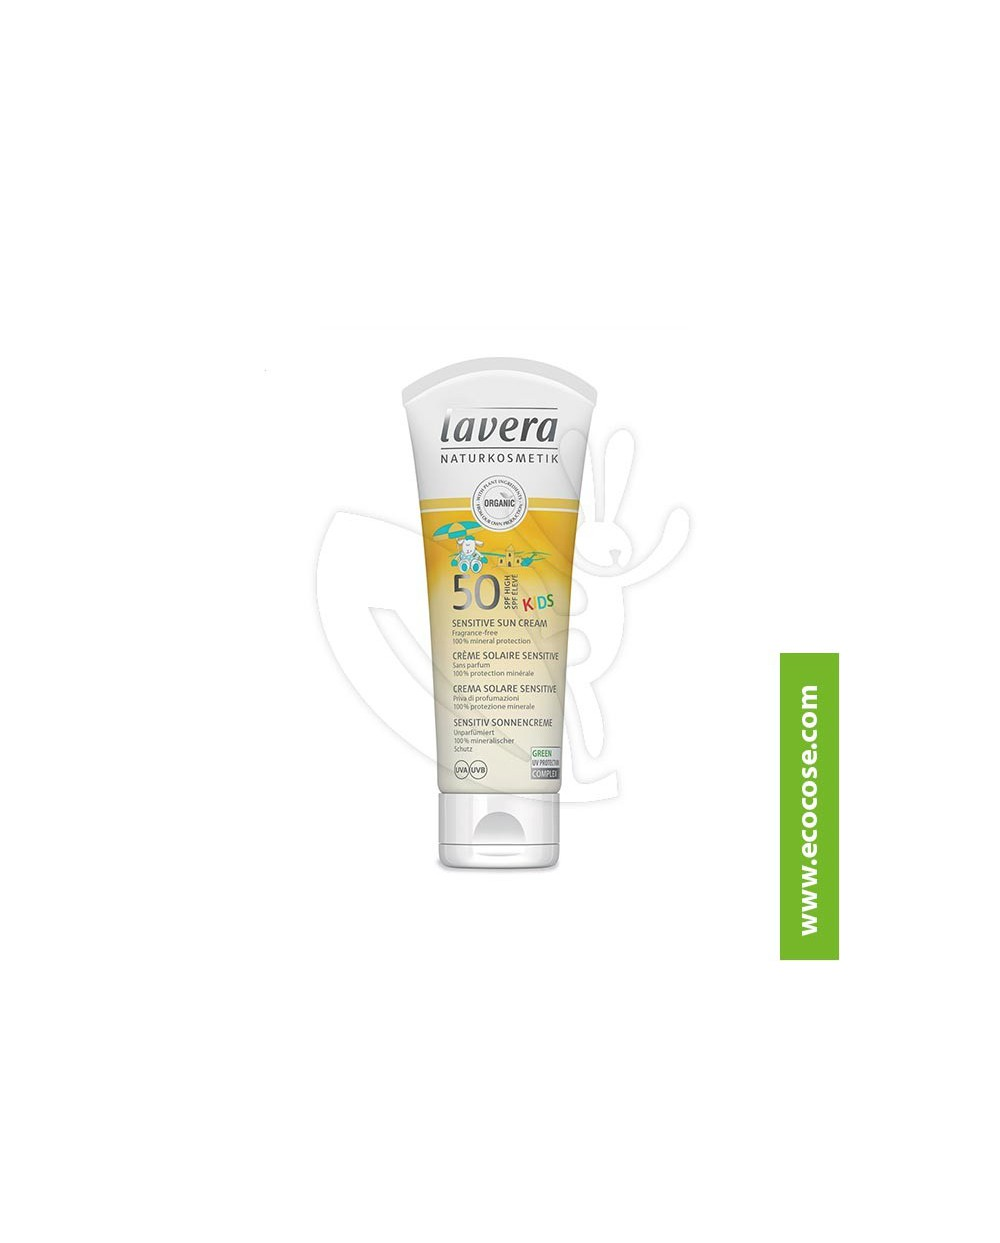 Lavera Sun - Crema solare sensitive spf50 KIDS